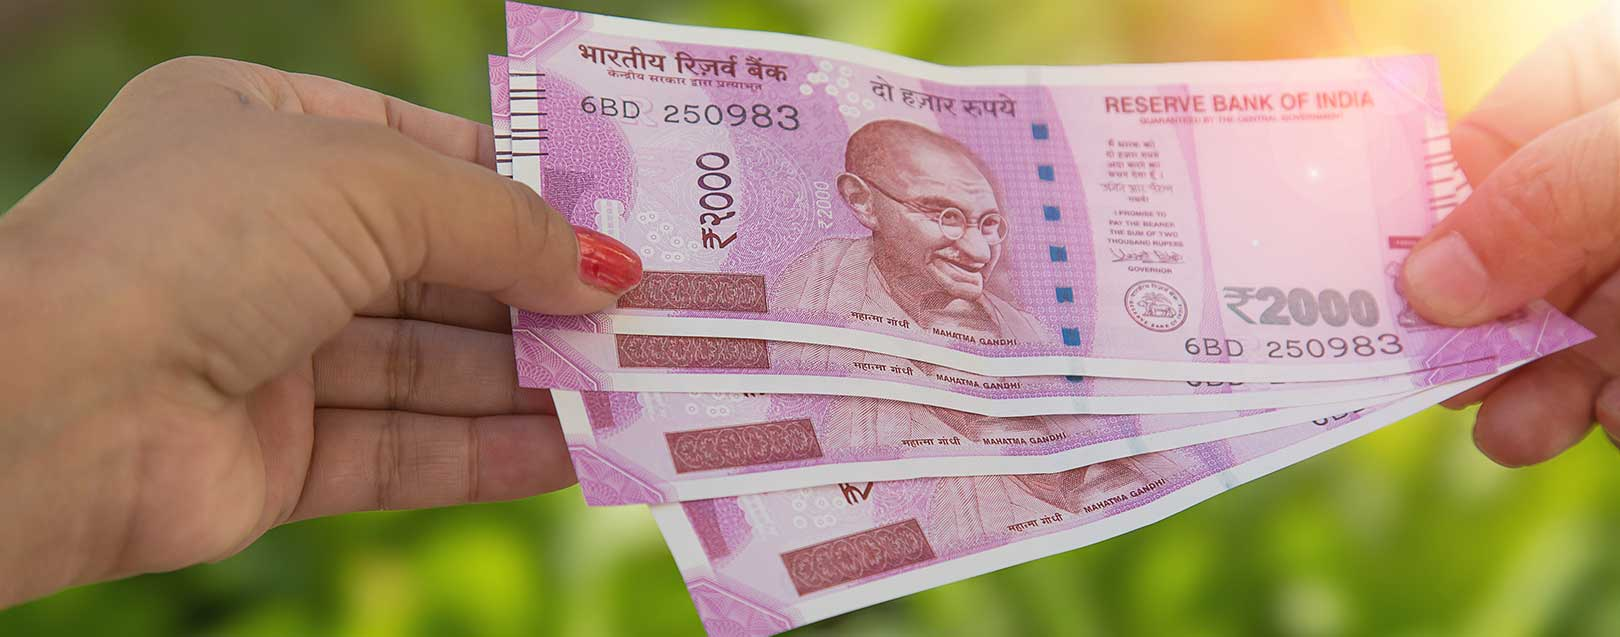 Get up to Rs. 2k cash at petrol pumps by swiping debit cards